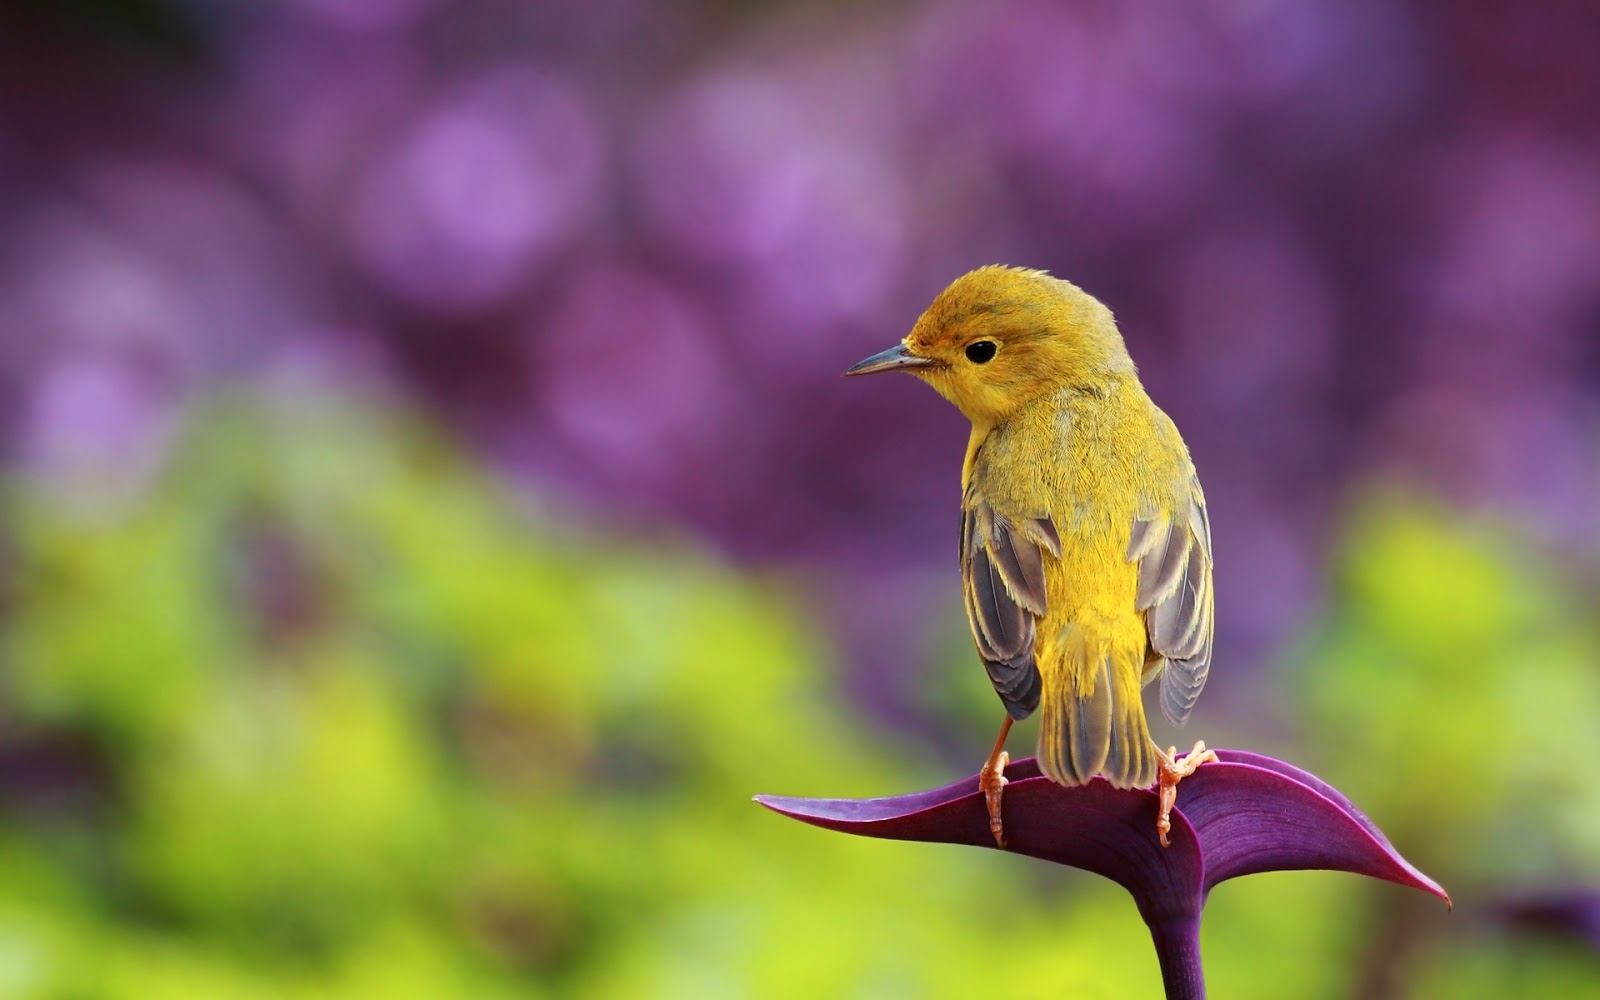 15 Fantastic Hd Bird Wallpapers